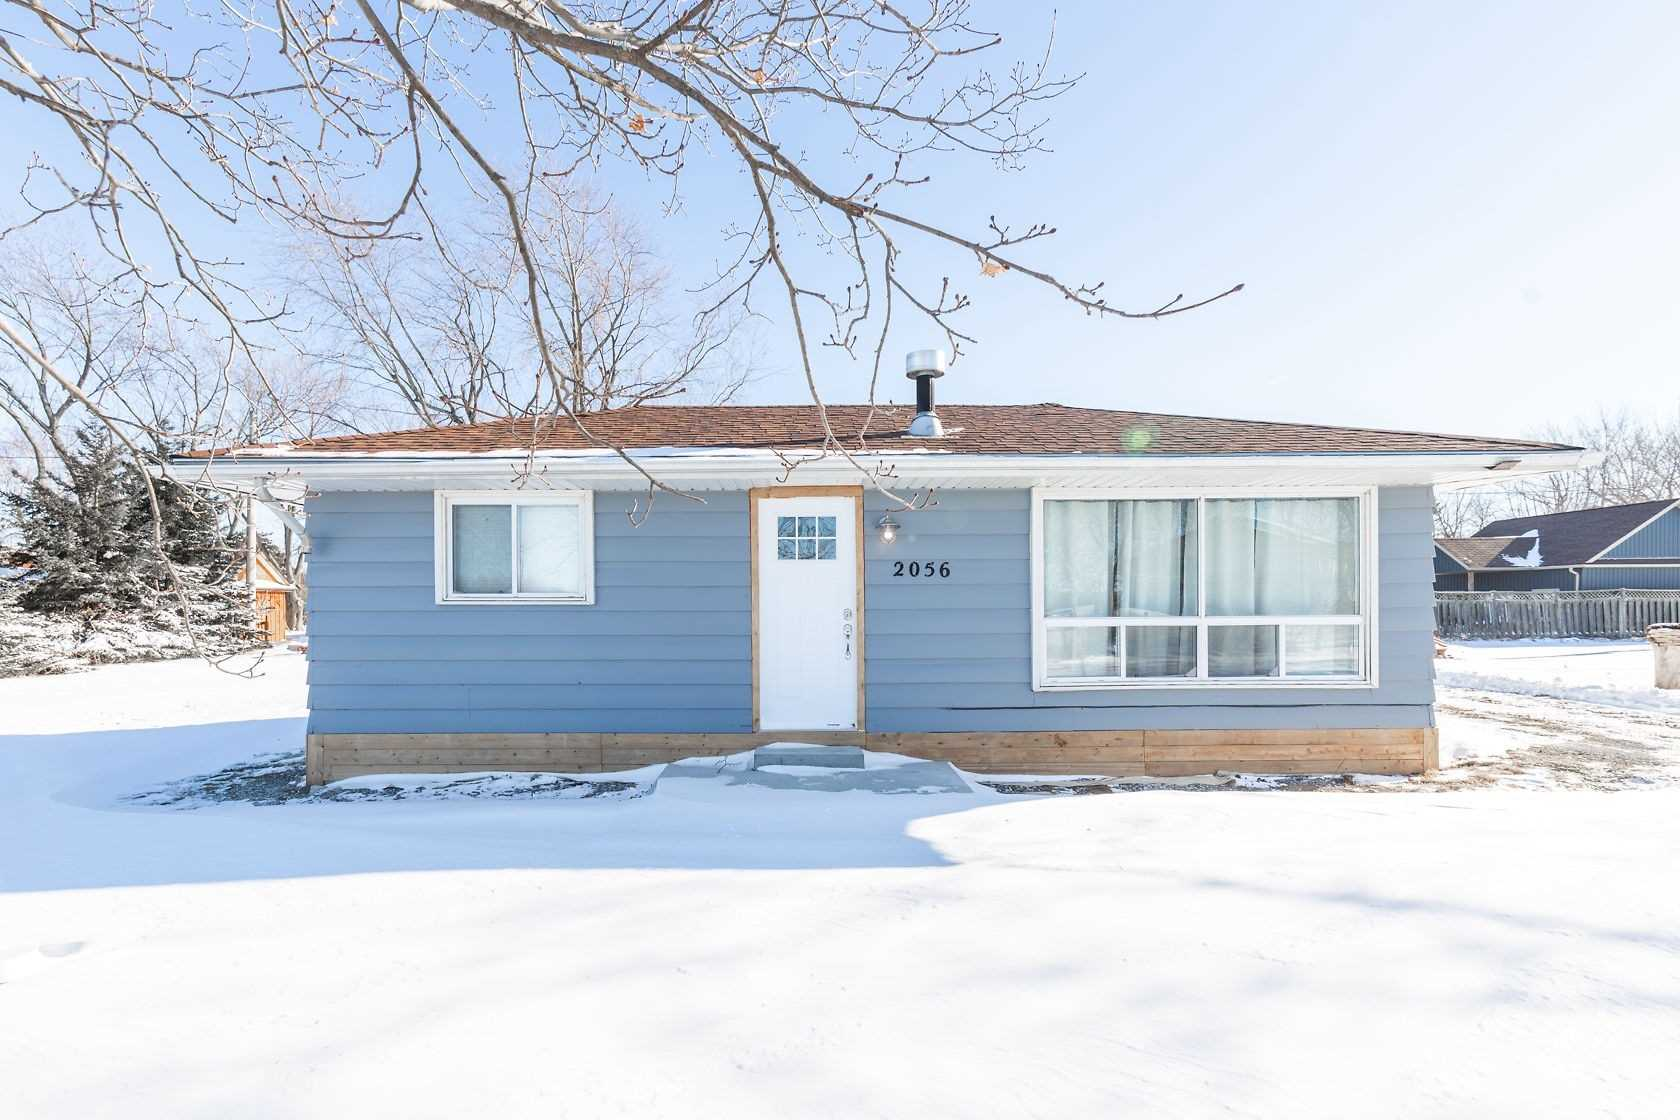 pictures of 2056 Second Ave, Haldimand N0A 1P0